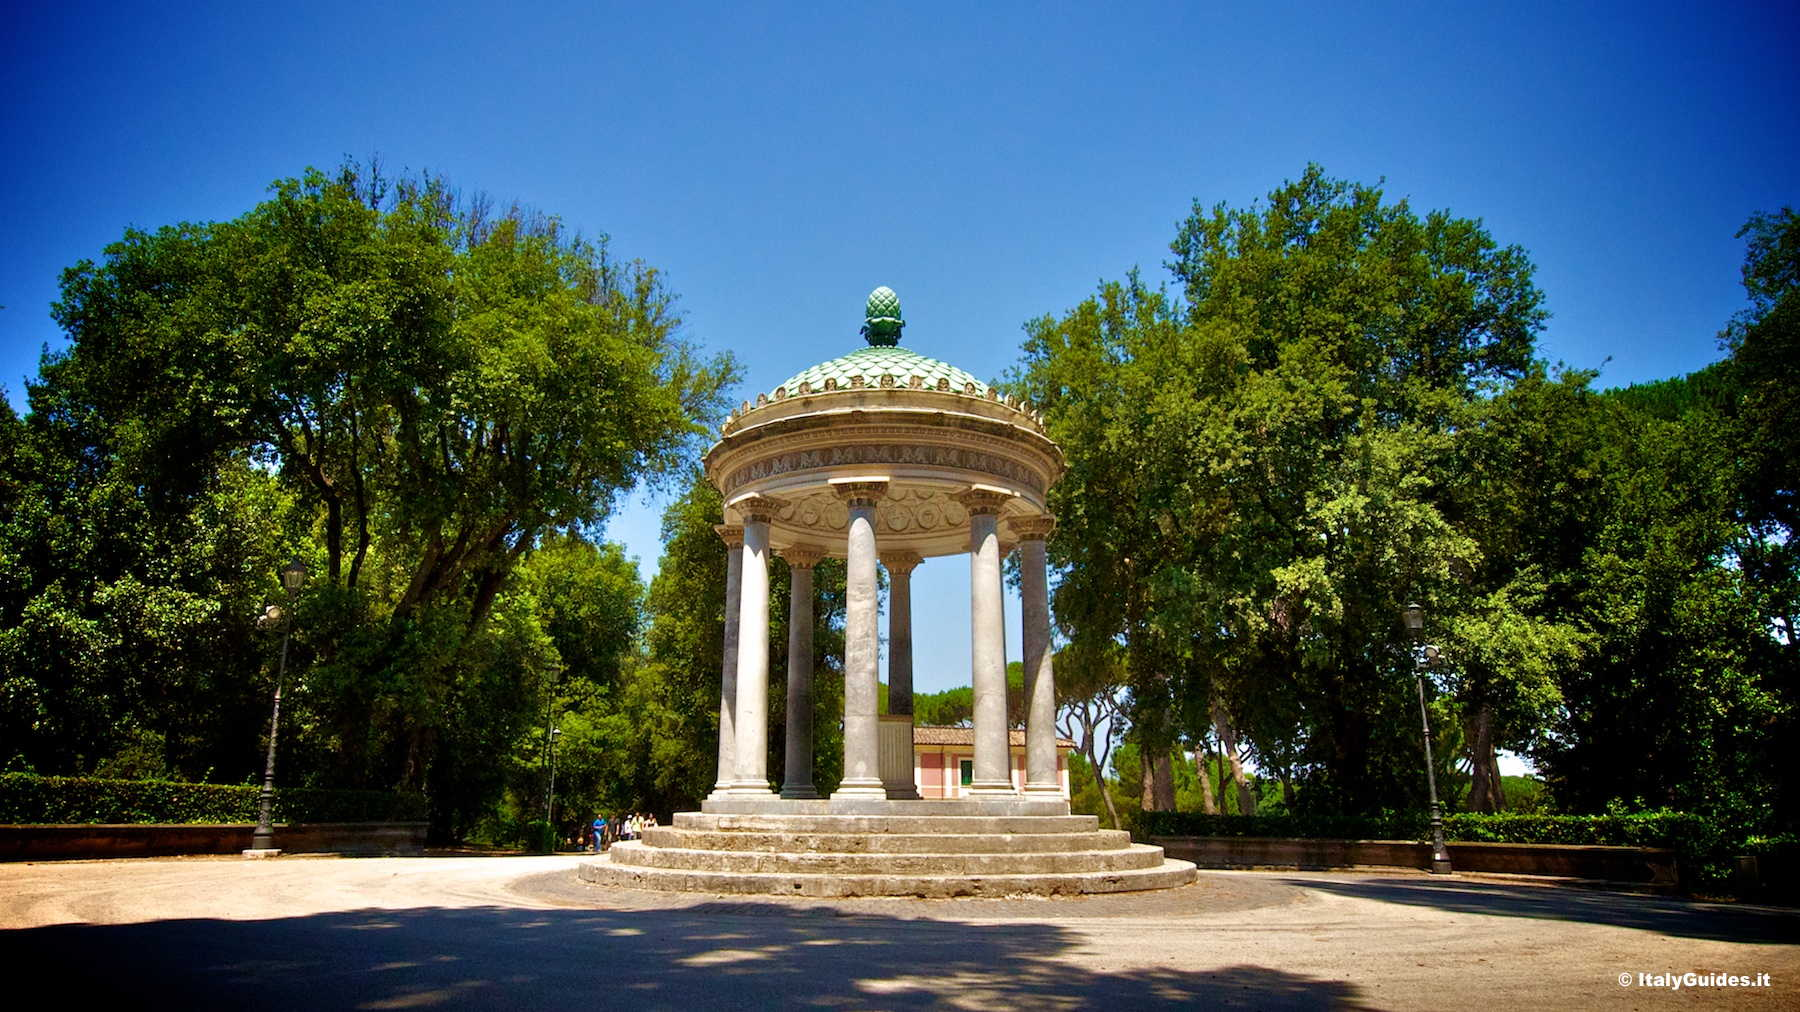 Pictures of Villa Borghese, Rome - Italy - ItalyGuides.it Pictures